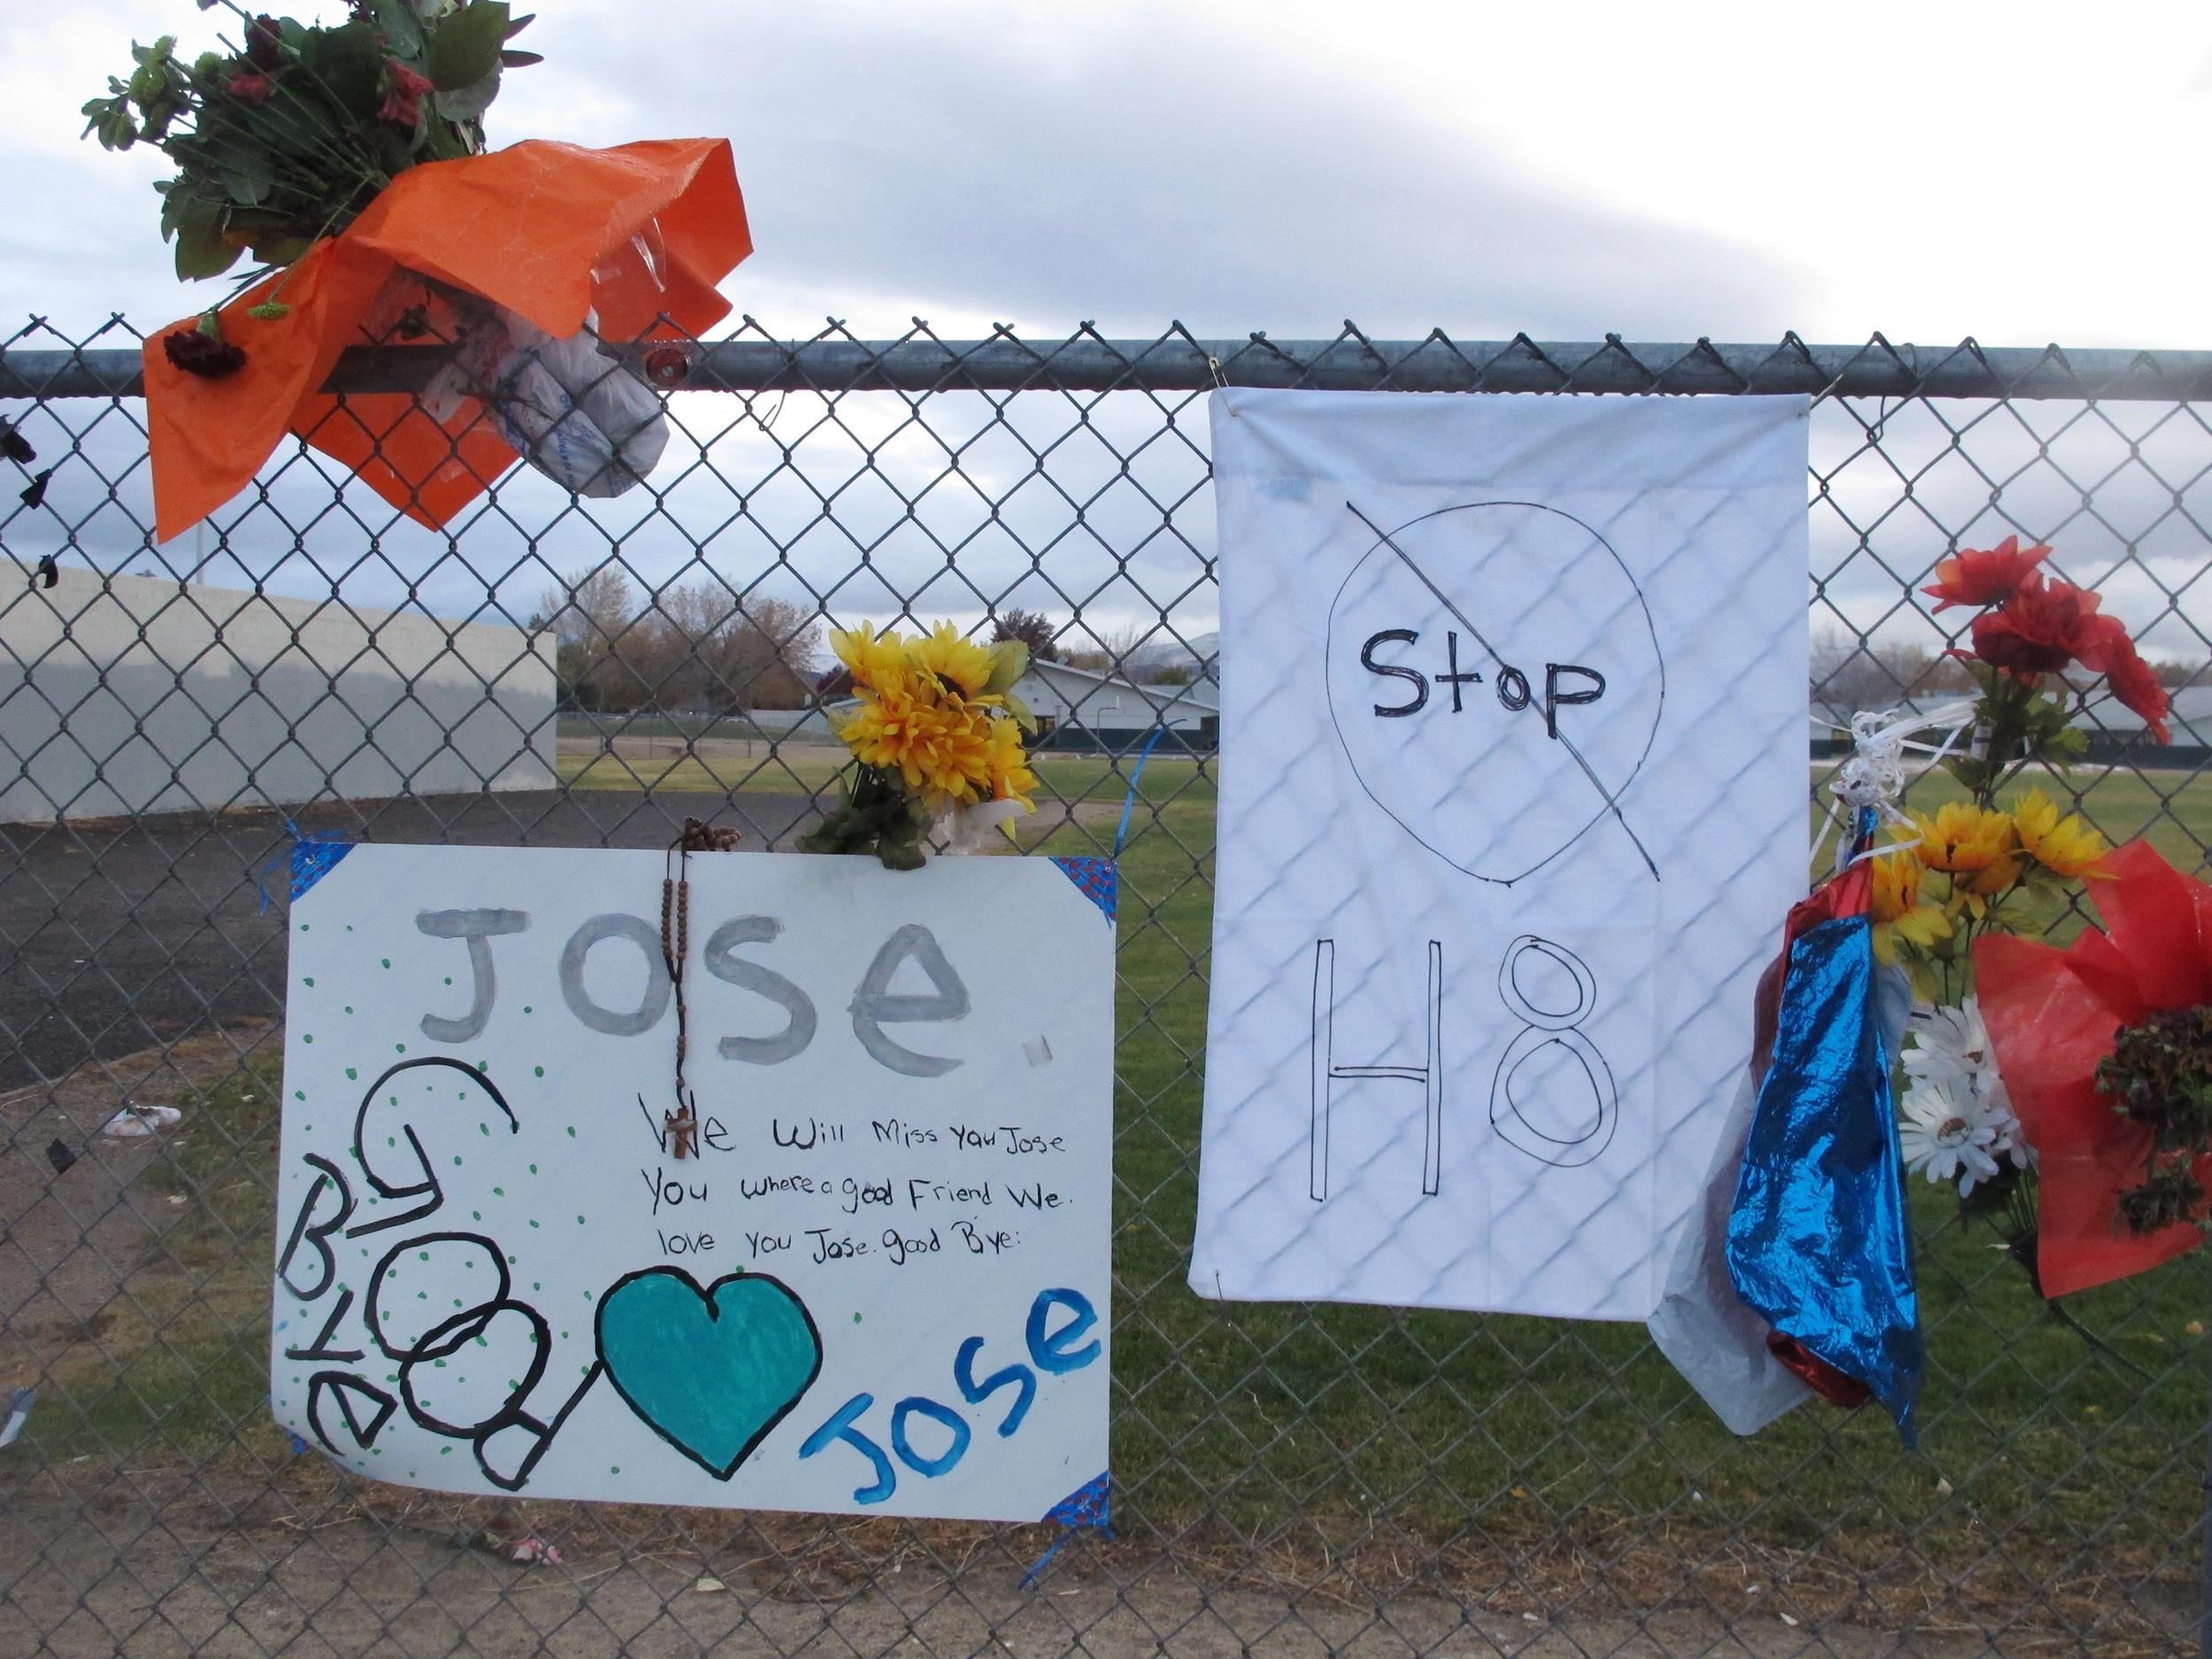 Image: Friends have added a message to Jose Reyes and a small wooden cross at a memorial